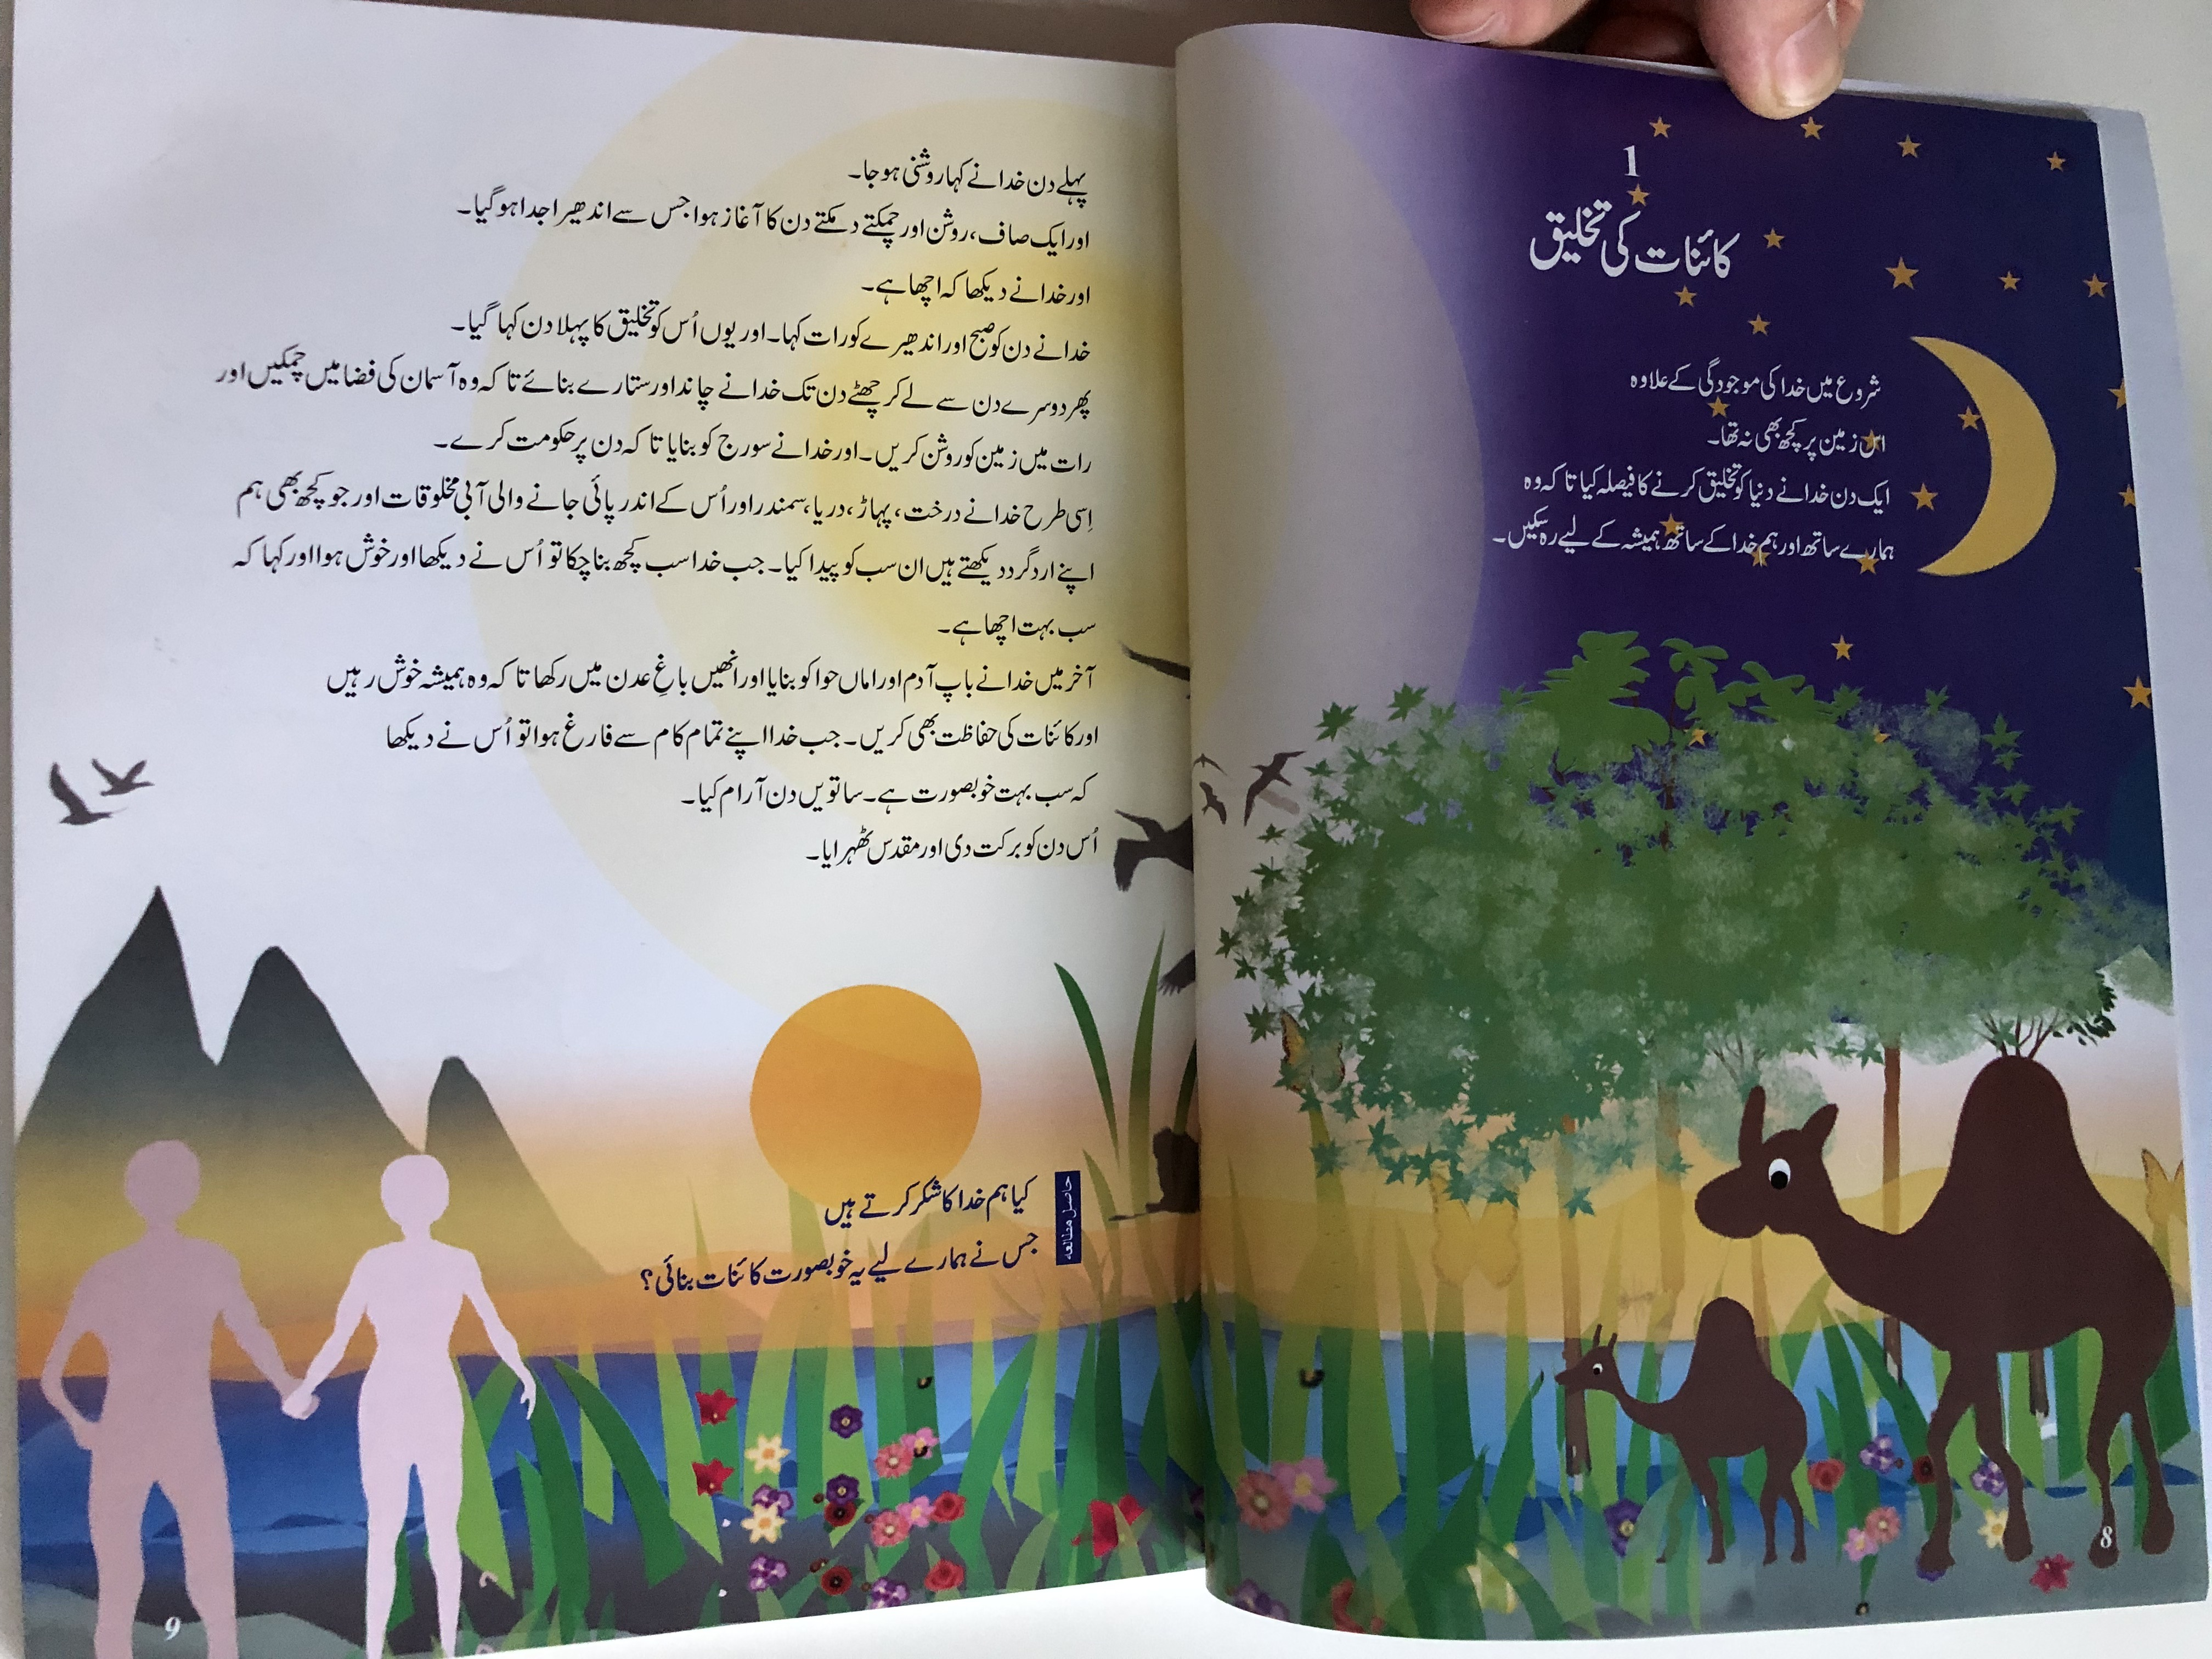 urdu-children-s-picture-bible-st.-paul-communication-centres-pakistan-paperback-2016-color-illustrations-great-gift-for-children-4-.jpg